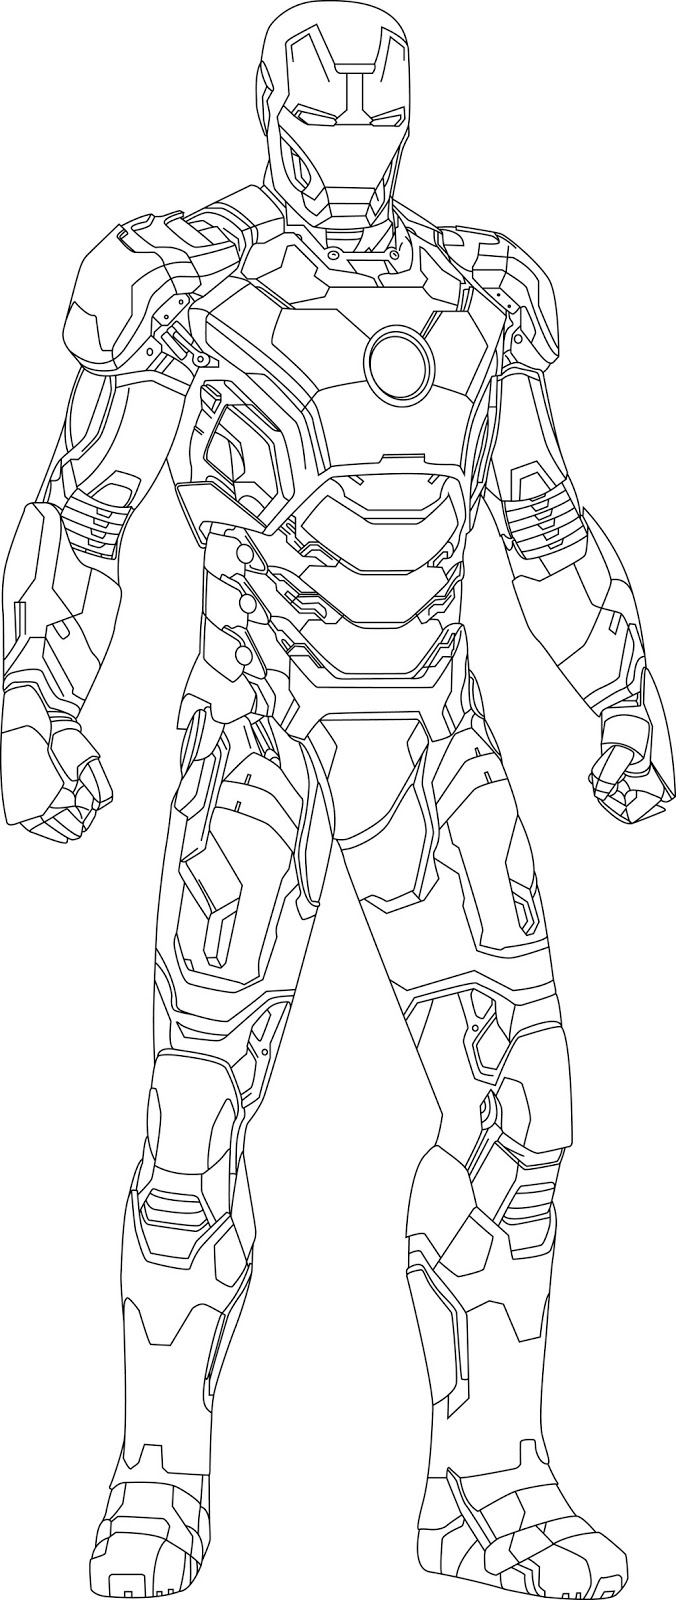 iron man 3 pictures to color avengers coloring pages ecoloringpagecom printable iron man 3 pictures to color